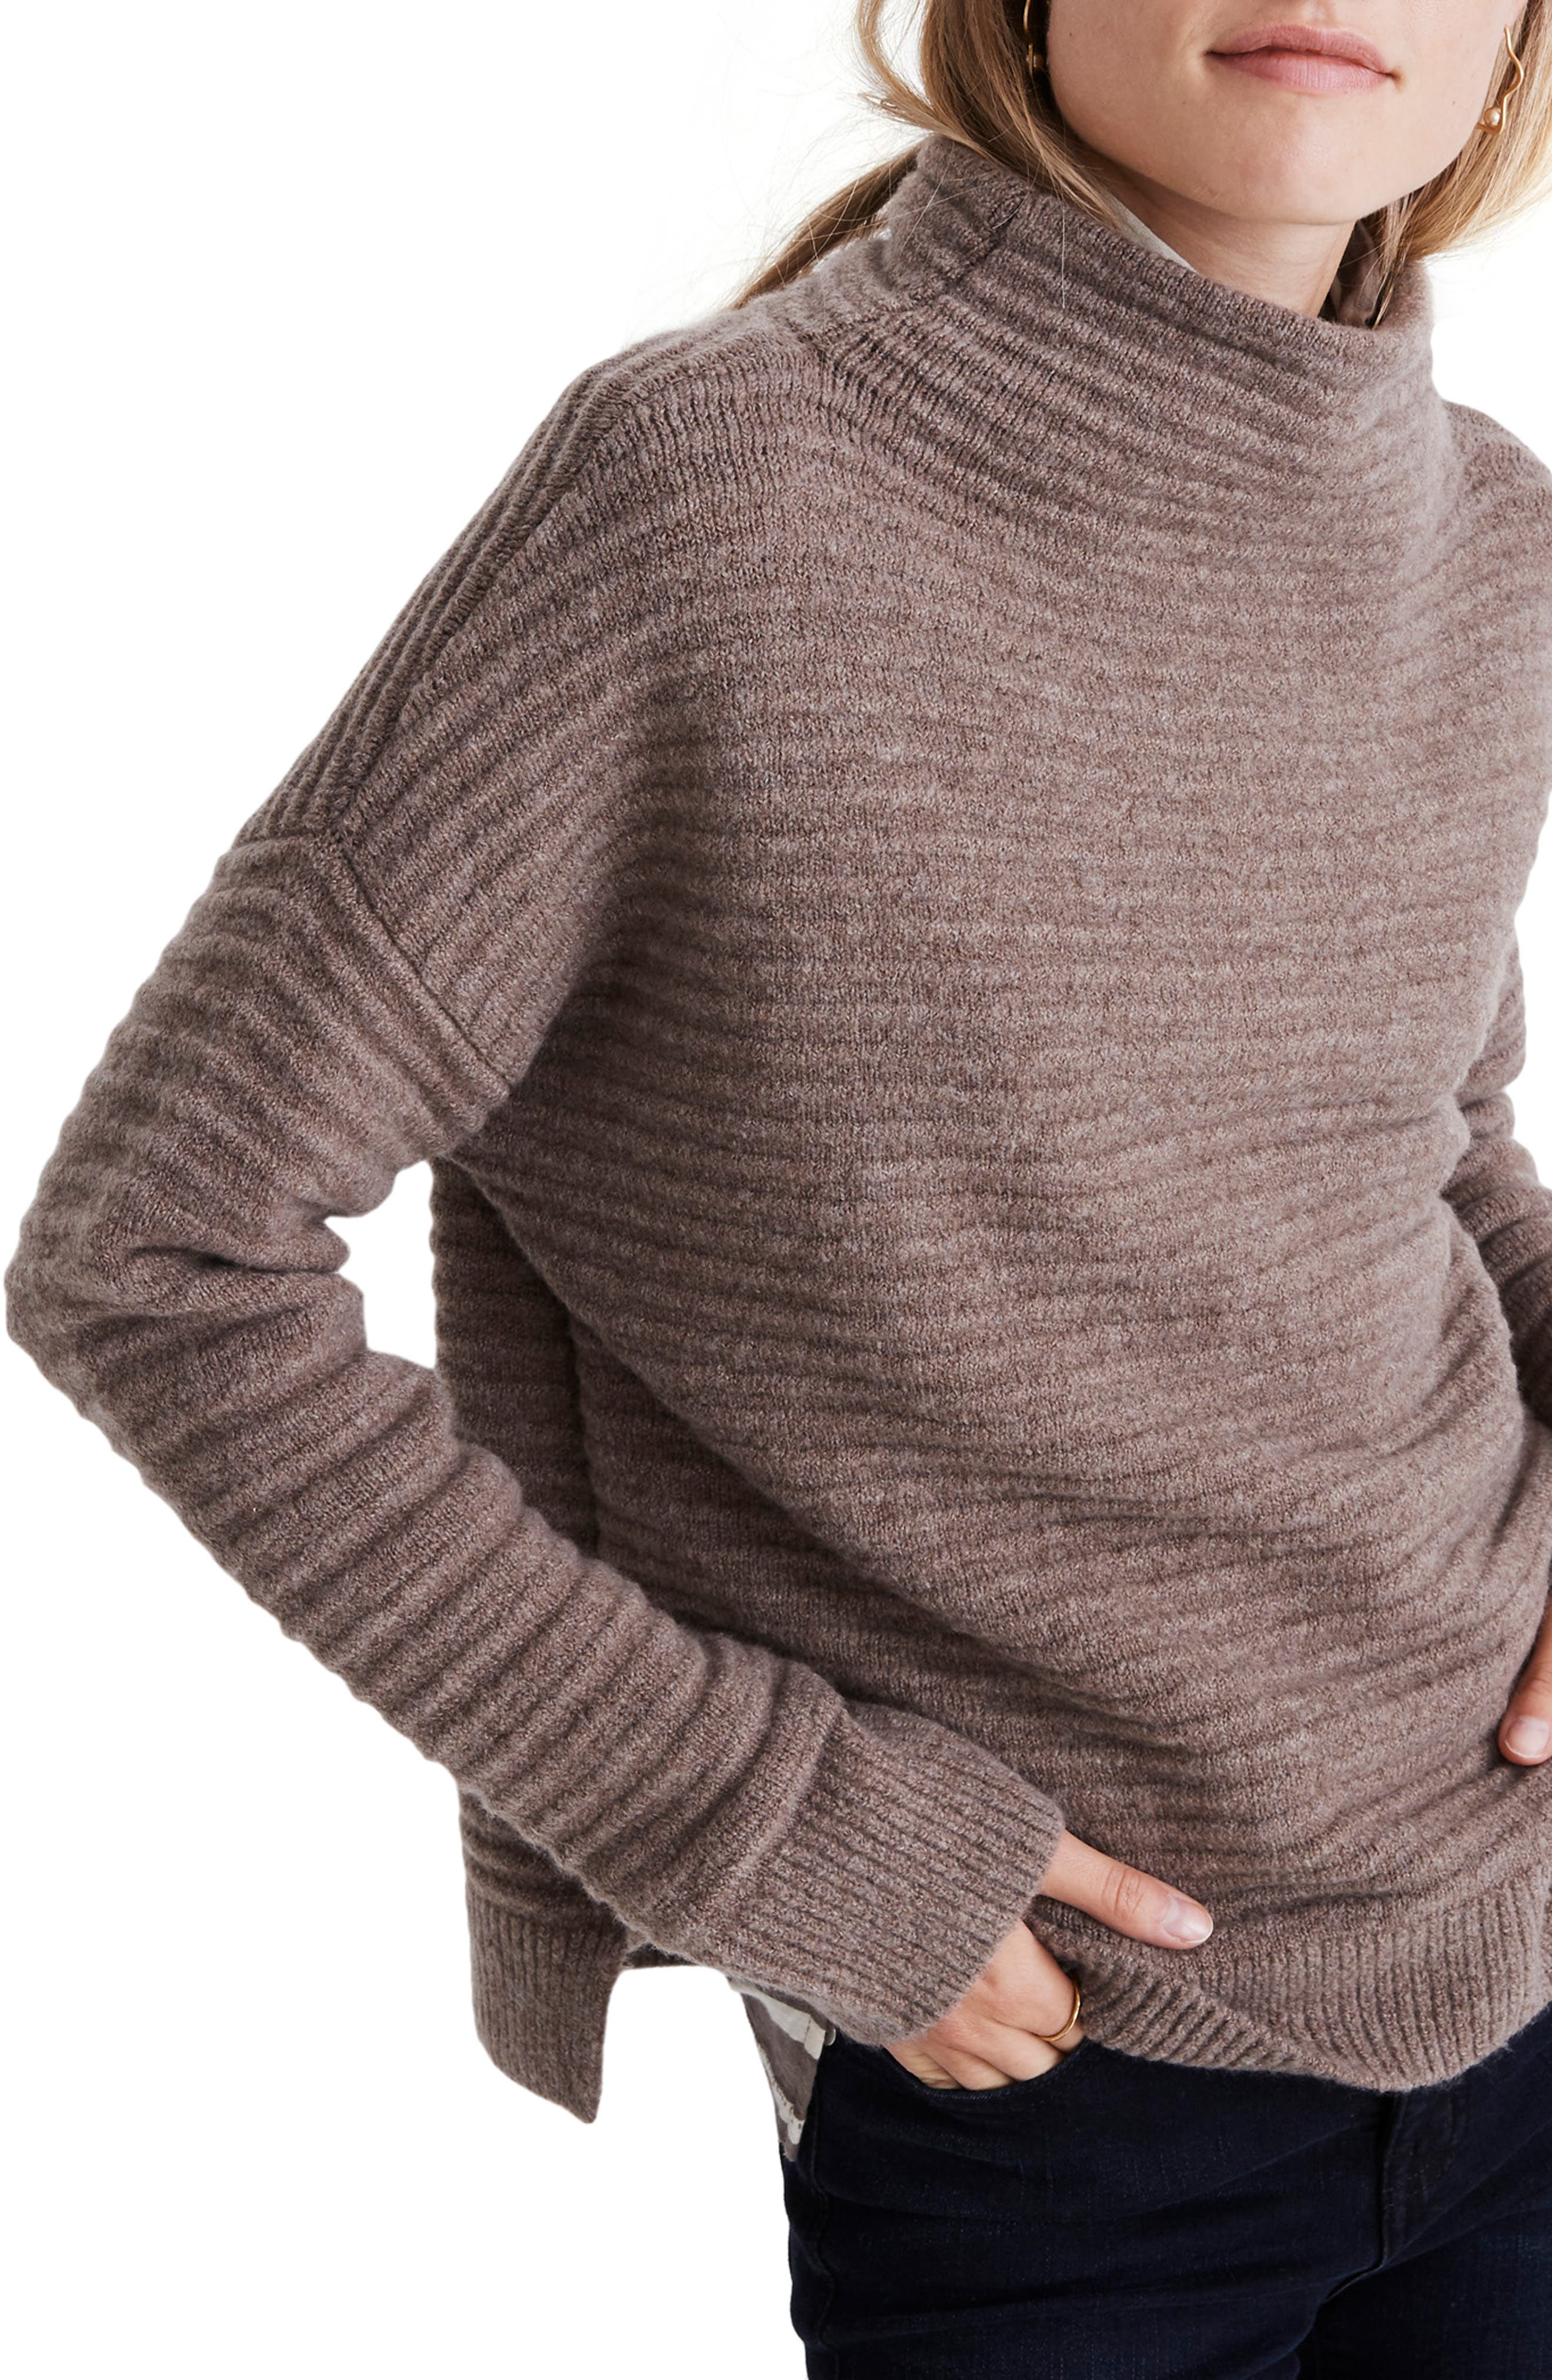 Belmont Mock Neck Sweater,                             Main thumbnail 1, color,                             HEATHER ROOT